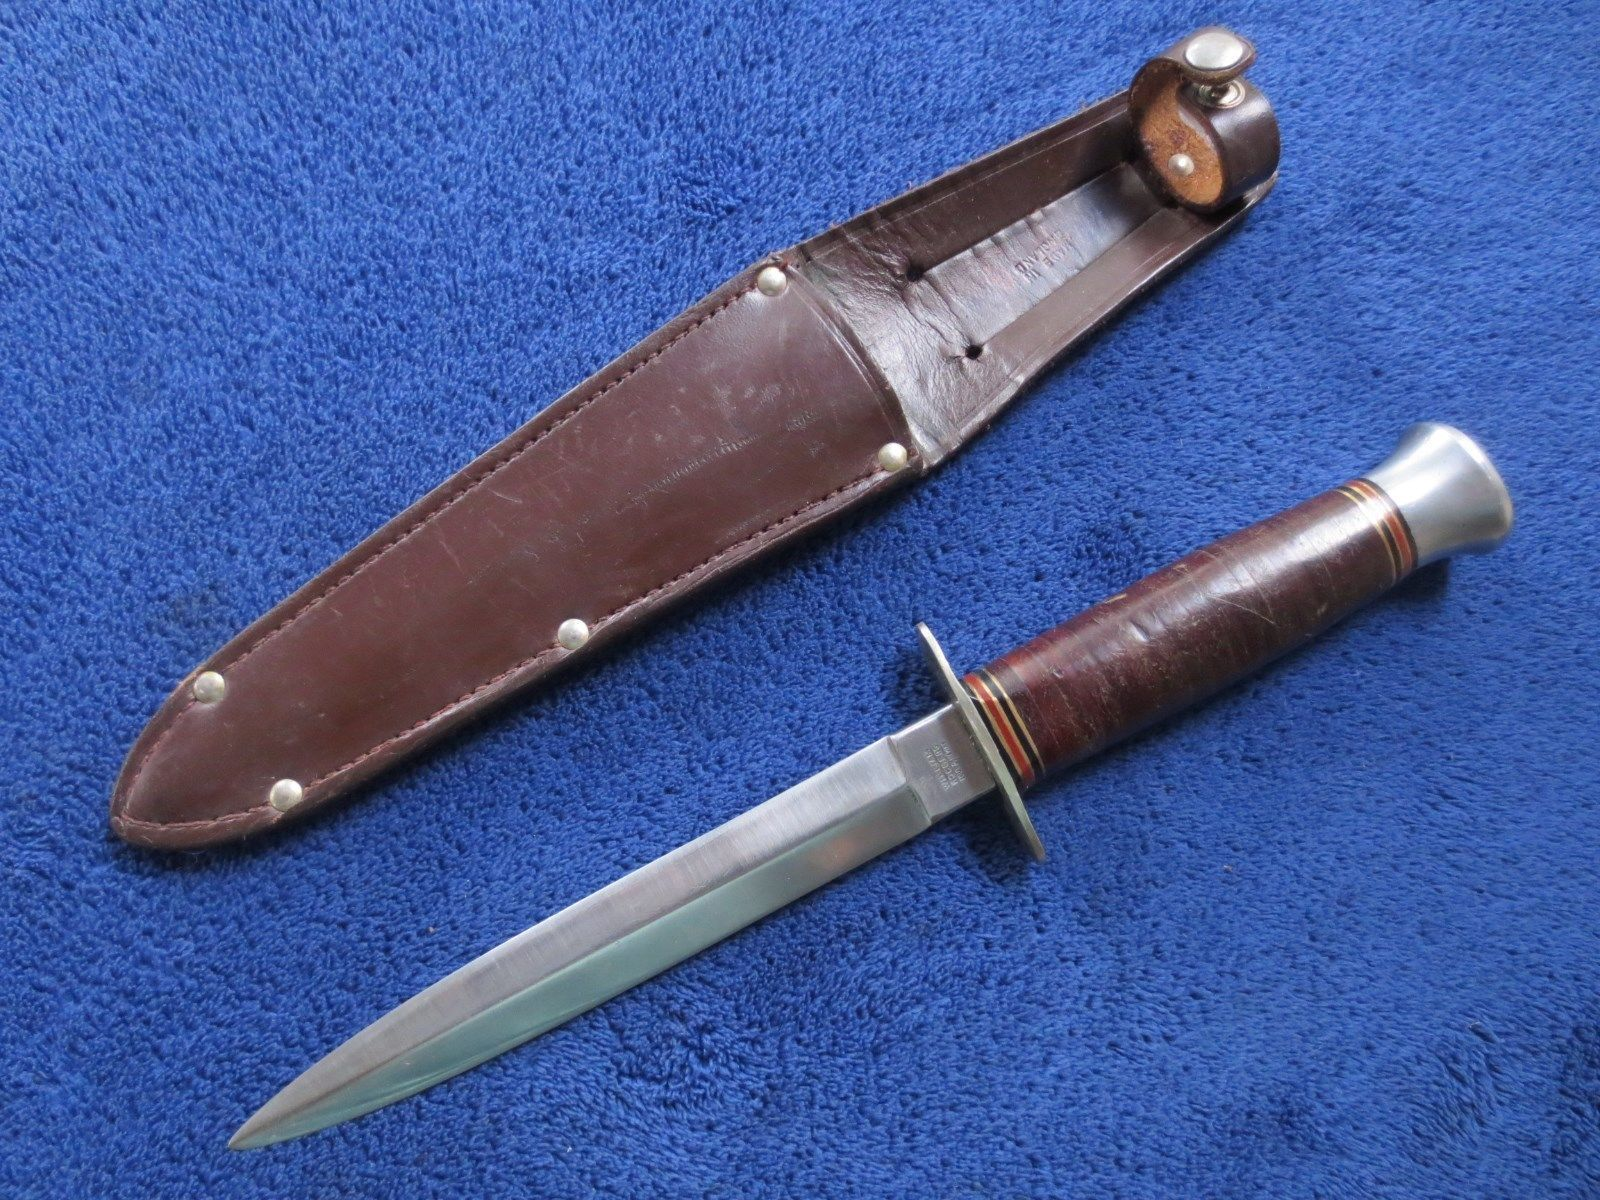 Vintage british fairbairn sykes style knife sheffield commando ...